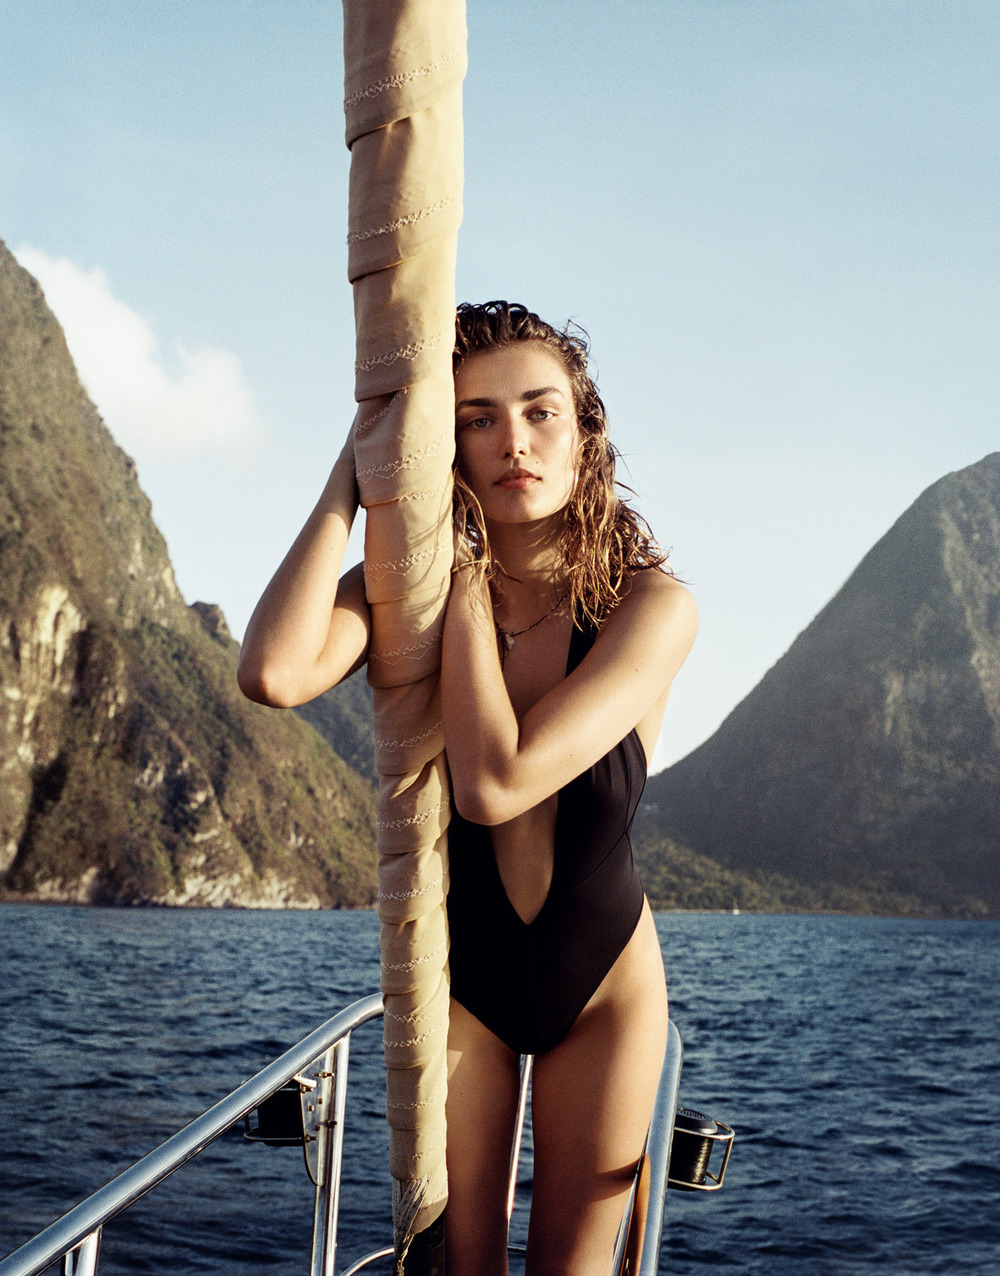 f7839-andreea-diaconu-by-cass-bird-for-porter-magazine-summer-escape-2015-9.jpg